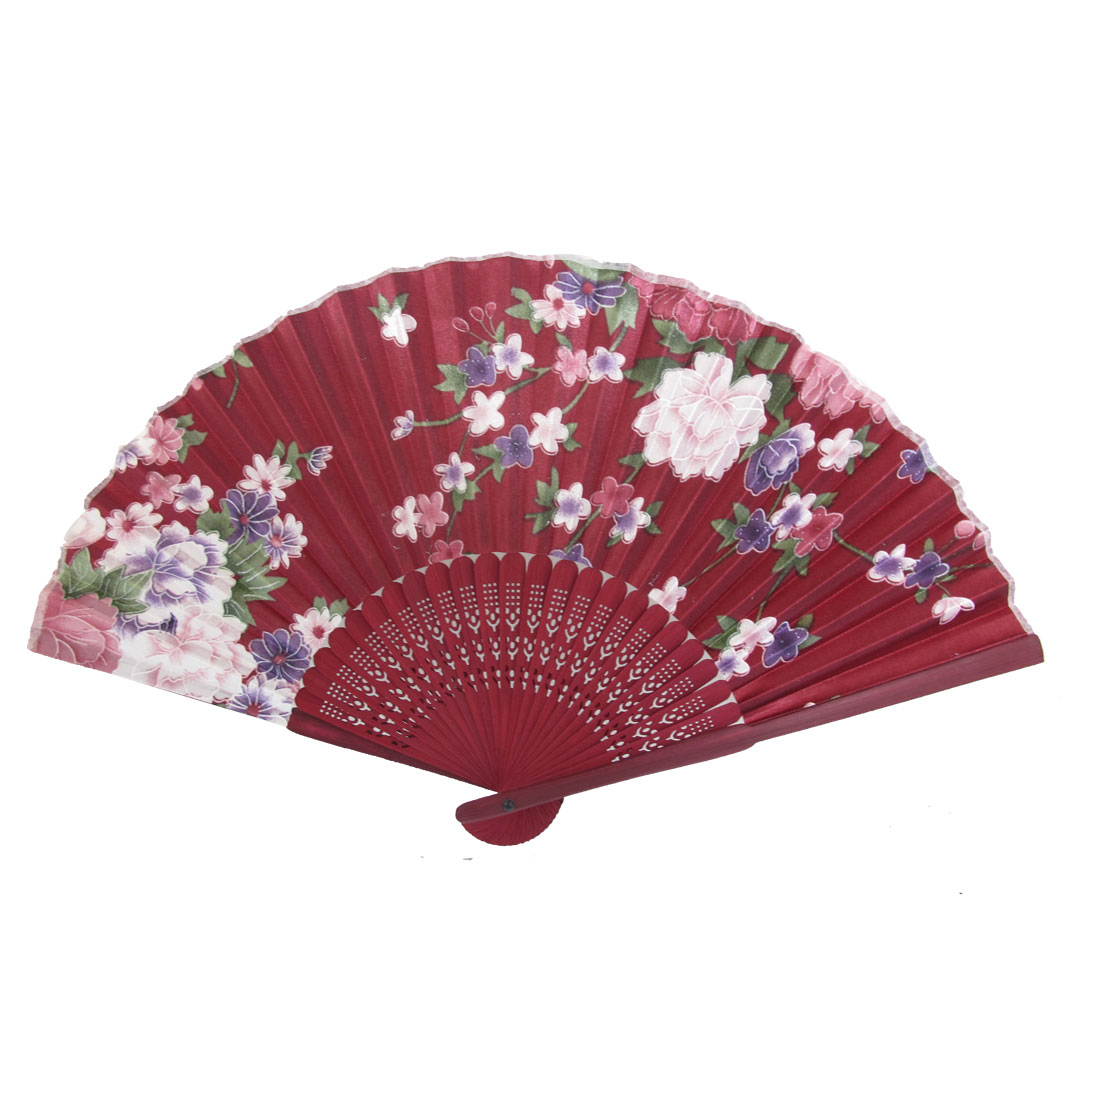 Burgundy Wood Hollow Out Style Frame Flower Pattern Fabric Folding Hand Fan